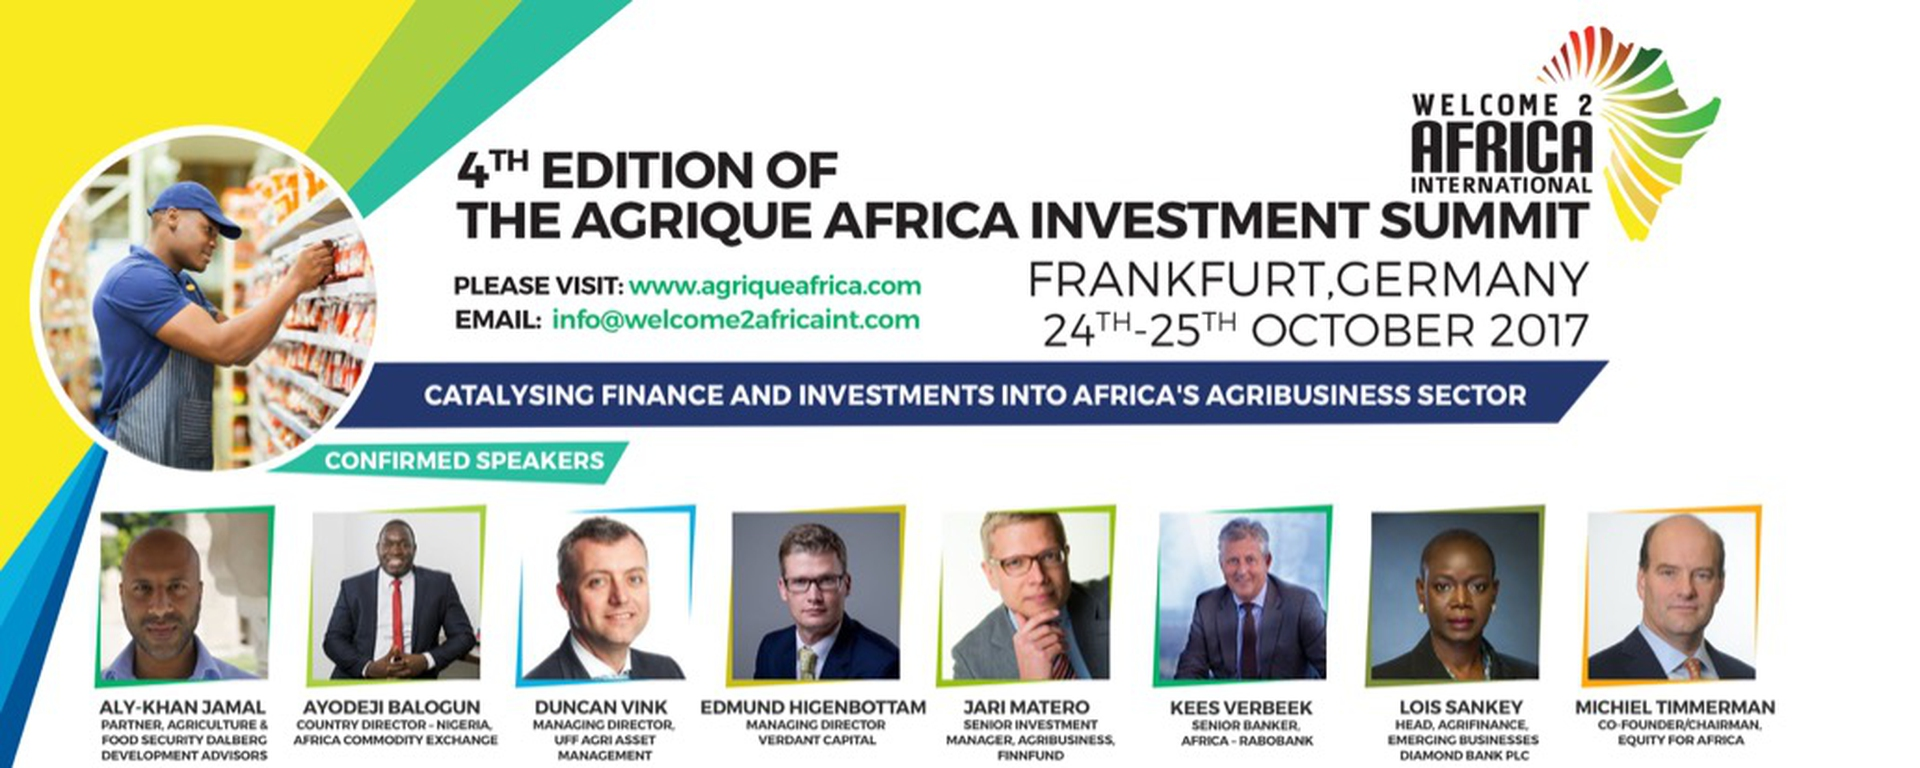 4th Edition Of The Agrique Africa Investment Summit 2017 at